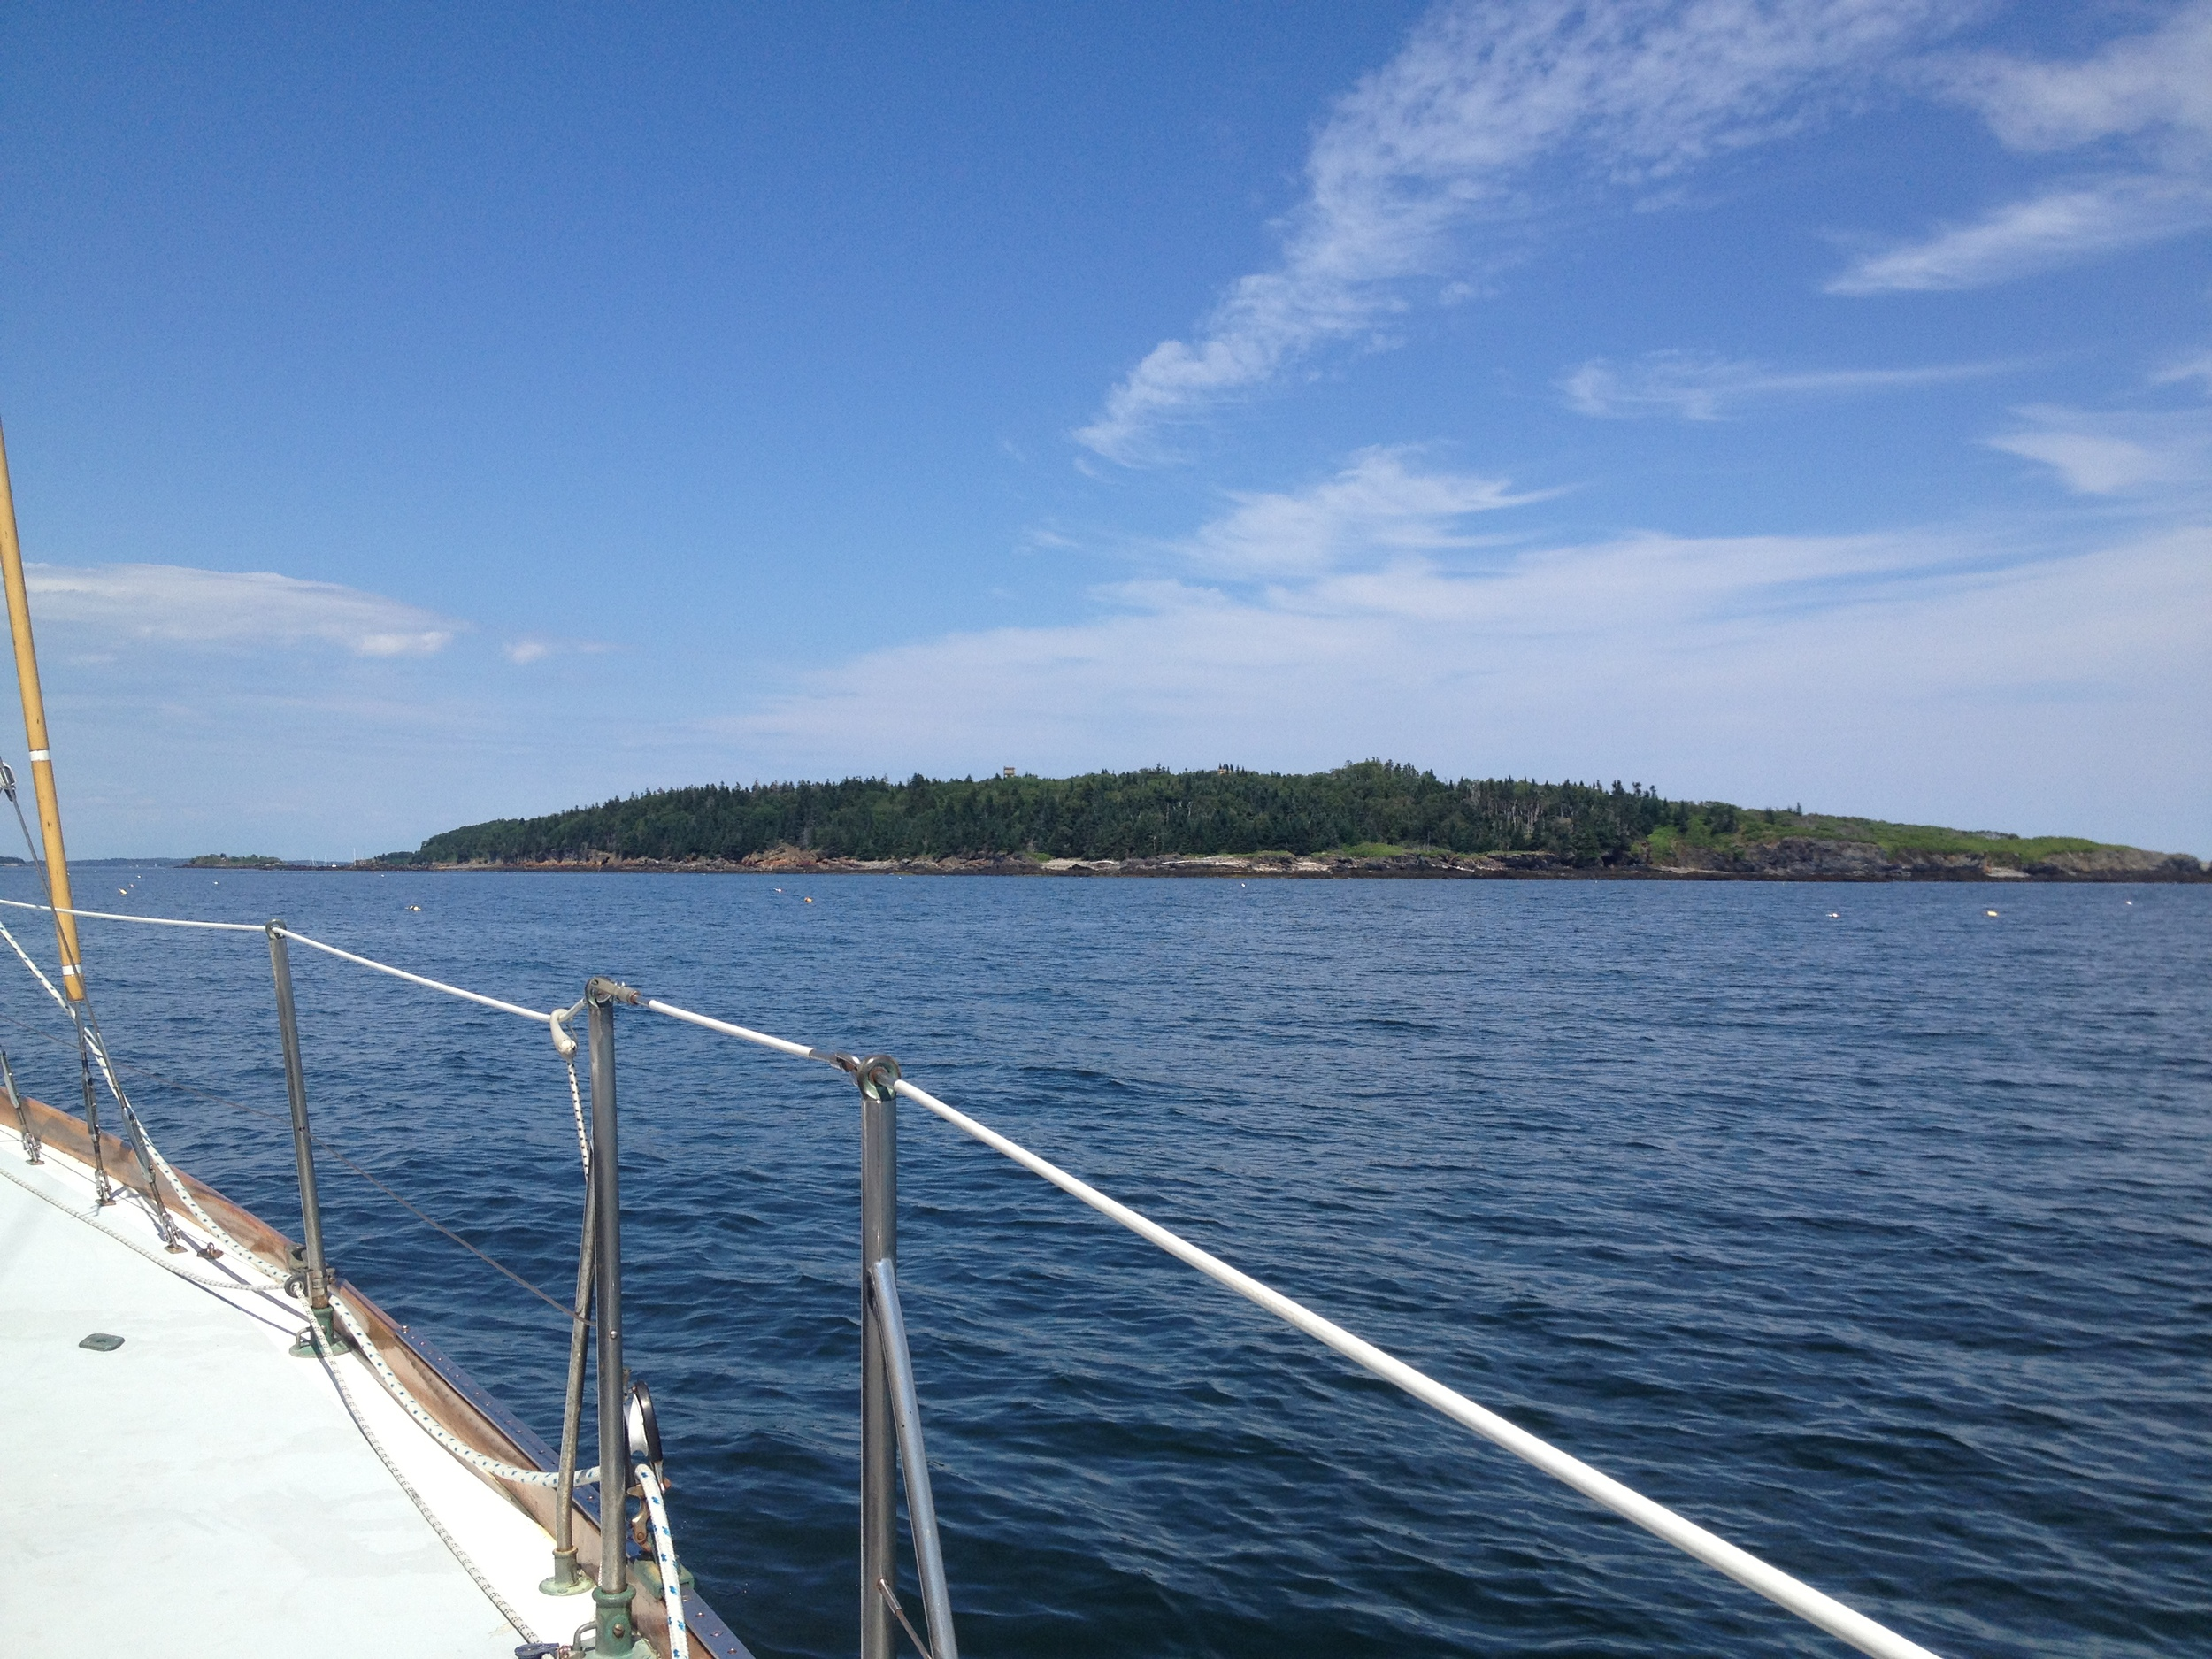 Approaching Jewell Island from the southwest.